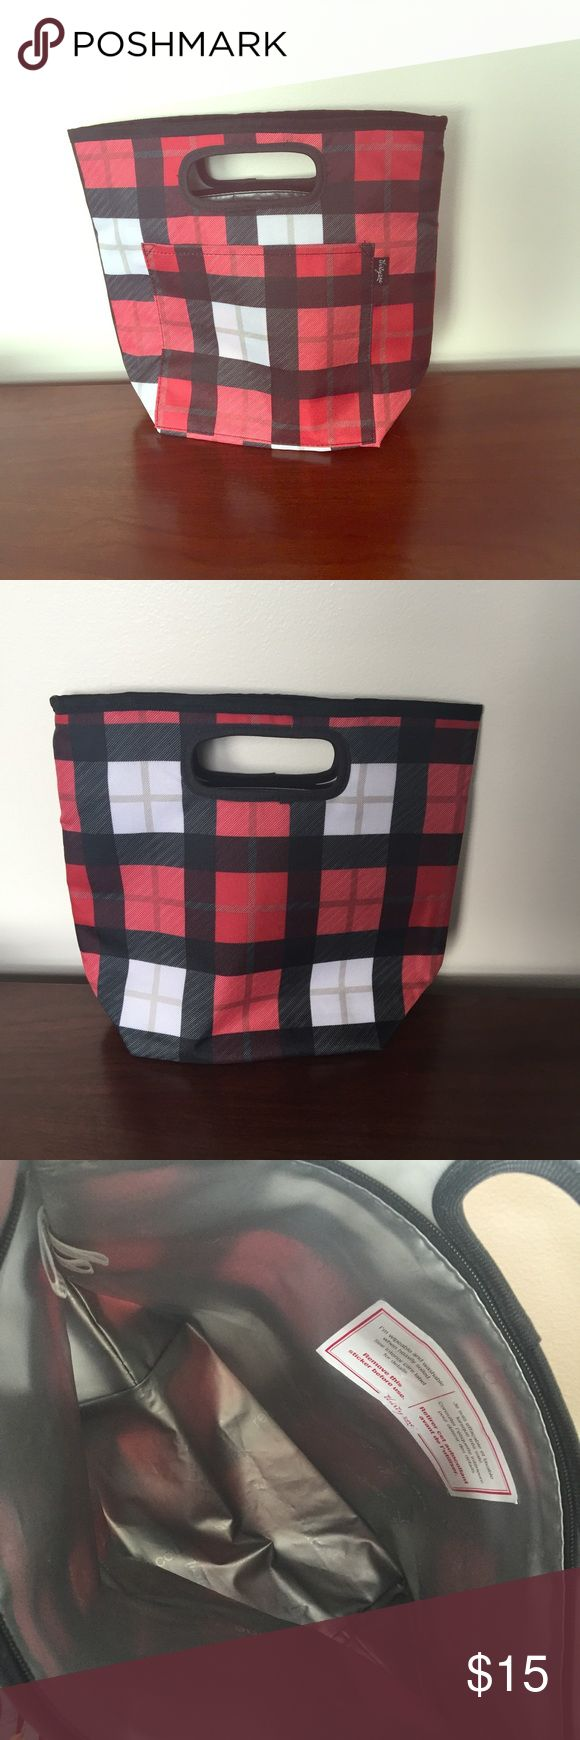 """Plaid Lunch Box NWOT: Thirty-One Go-To Thermal in Check Mate pattern. Wipeable & washable. One exterior pocket. Zipper closure. 11""""H x 12.5""""L at top opening 8""""L at base x 5""""D Thirty-One Other"""